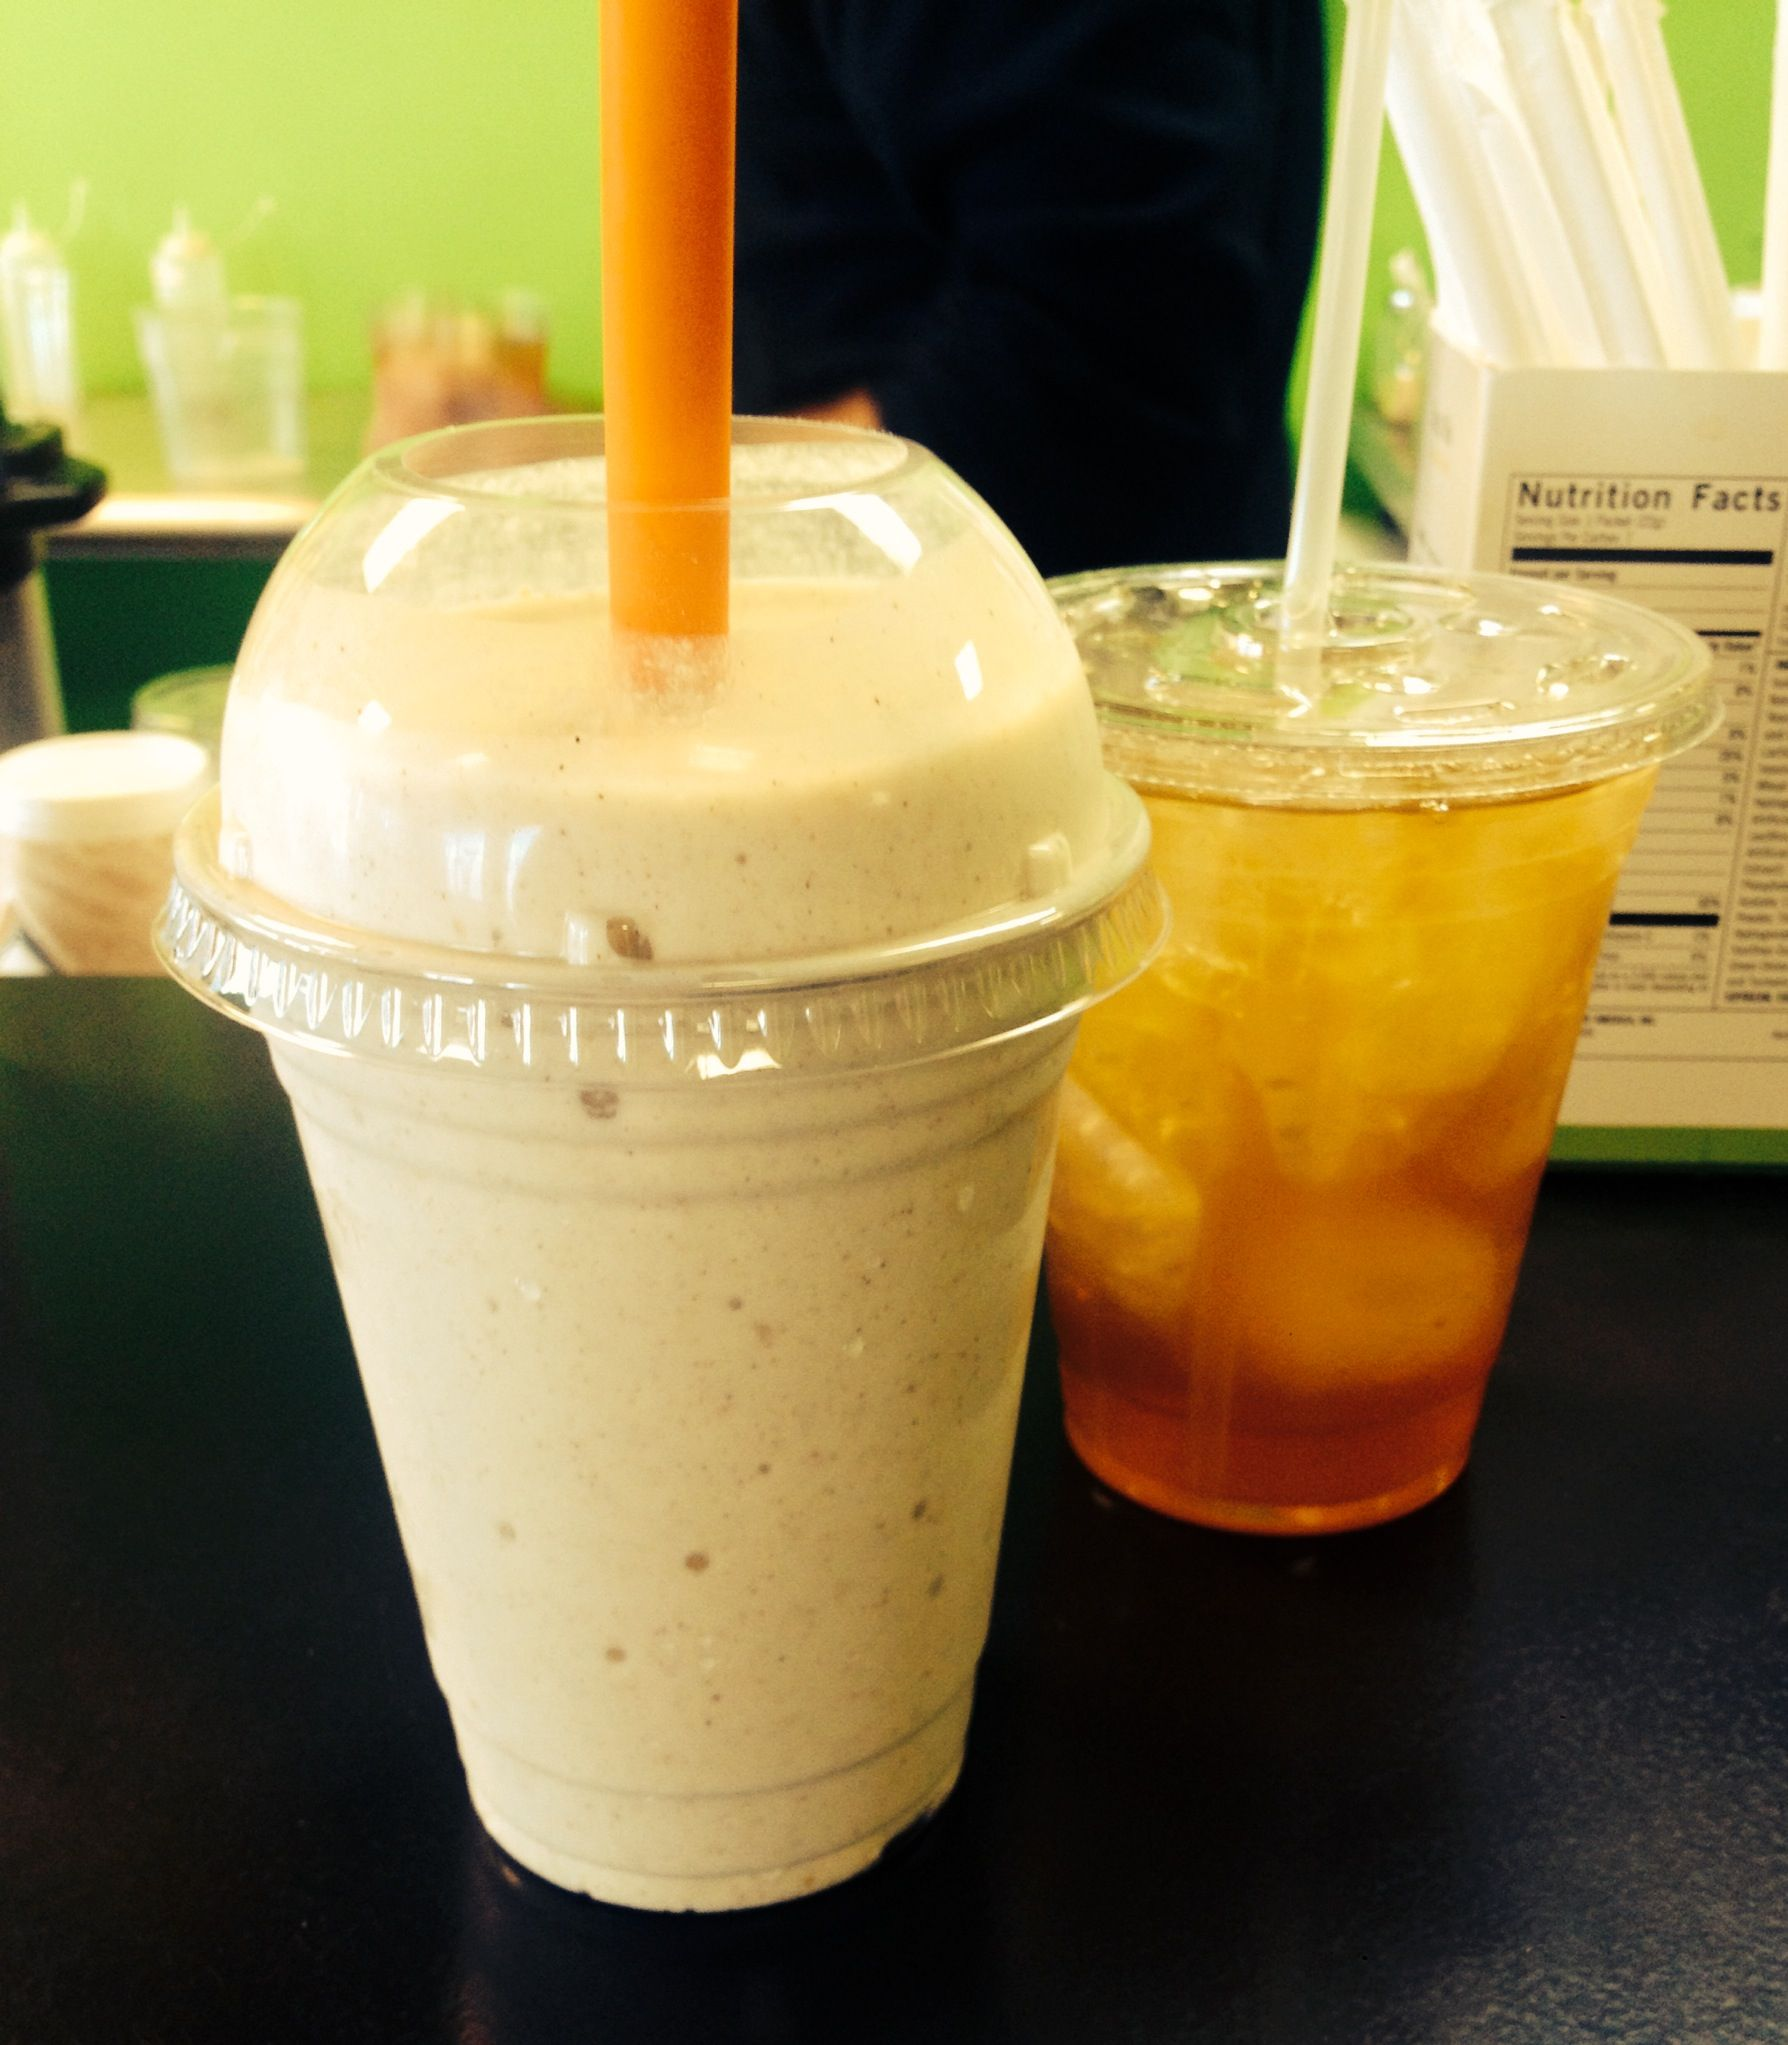 Herbalife snicker doodle shake! Yummo! 2 scoops formula 1 2 scoops ...